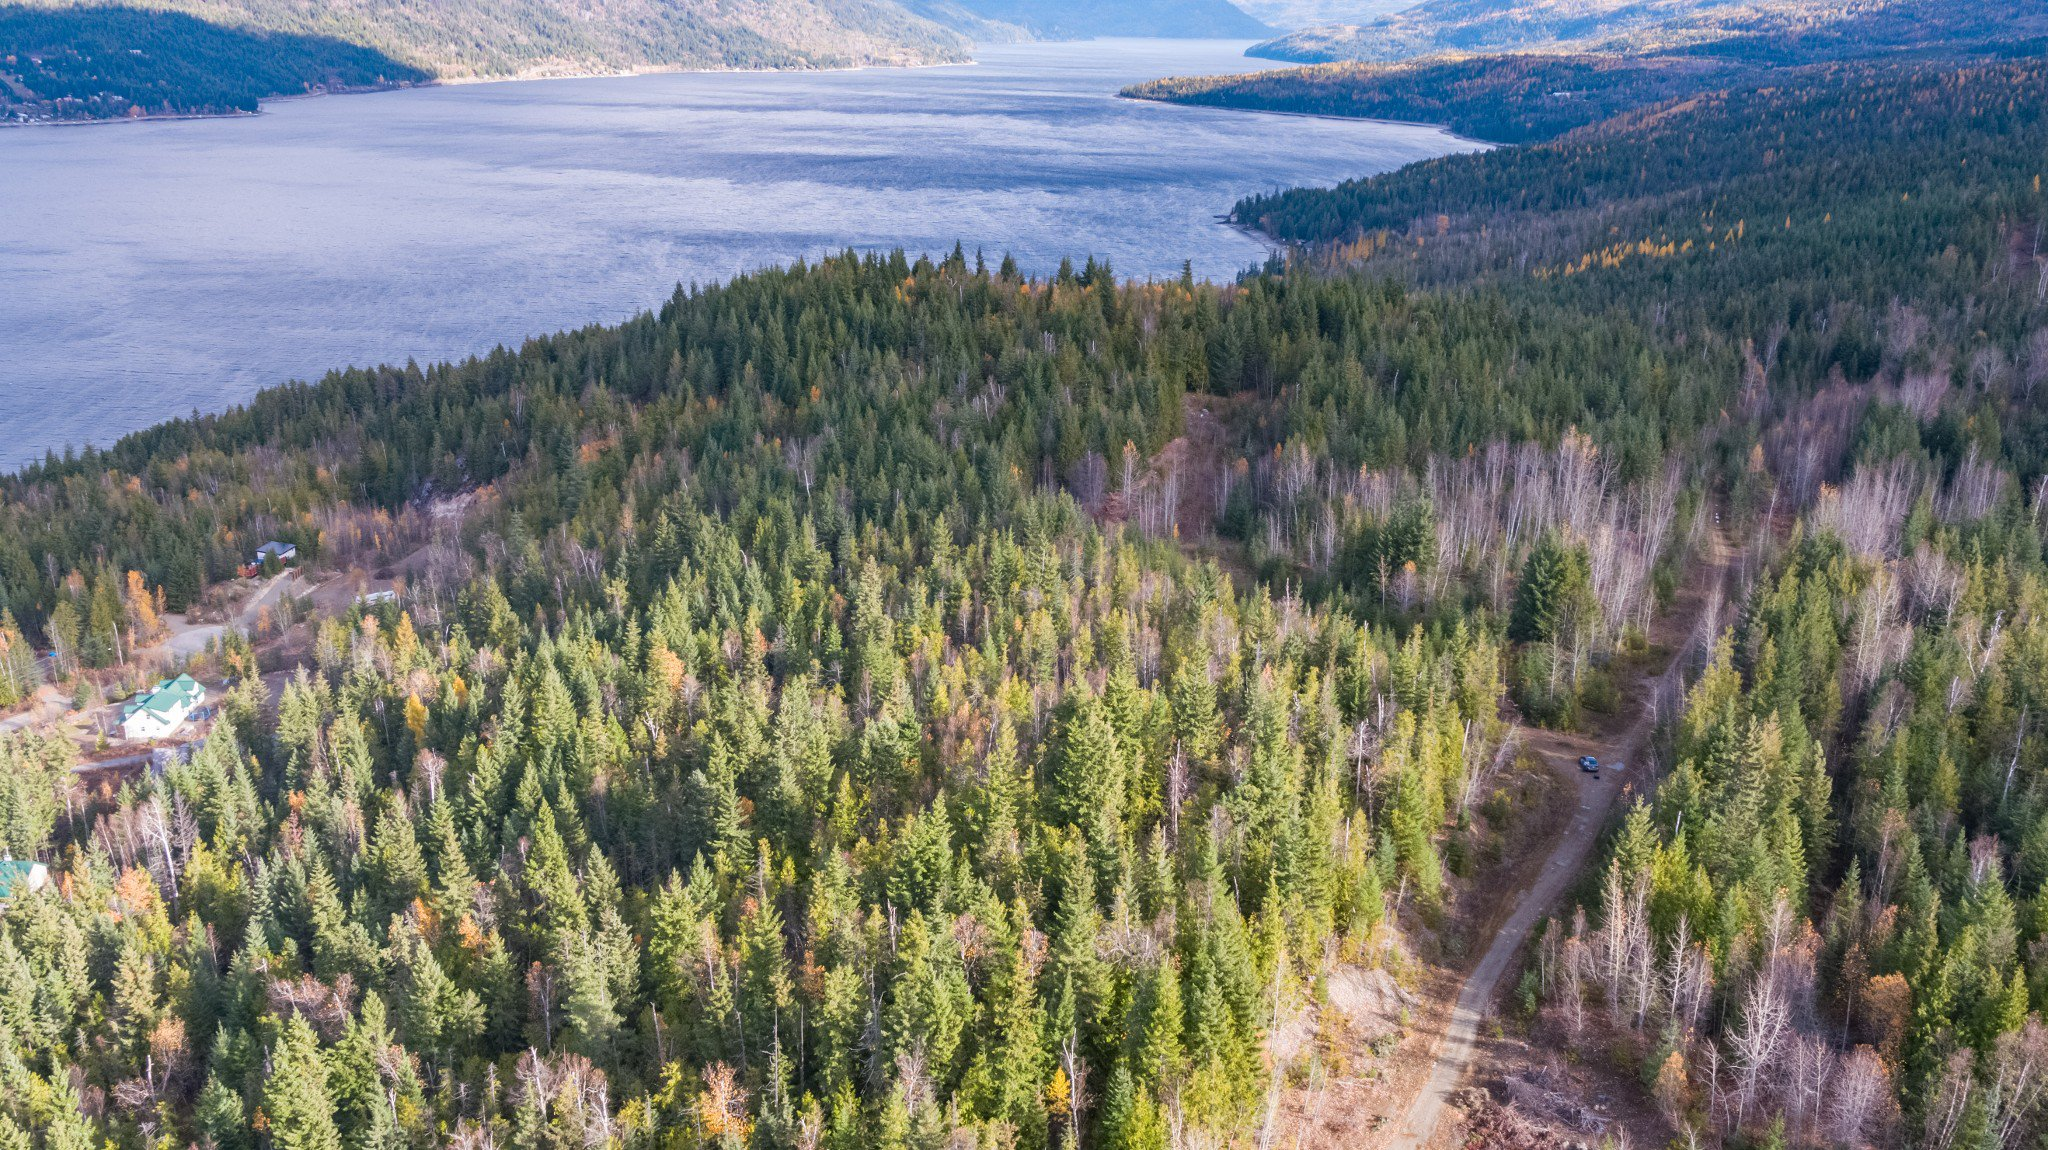 Main Photo: S/W 1/4 IVY ROAD in KAMLOOPS: Eagle Bay Land Only for sale (Shuswap Lake)  : MLS®# 153828